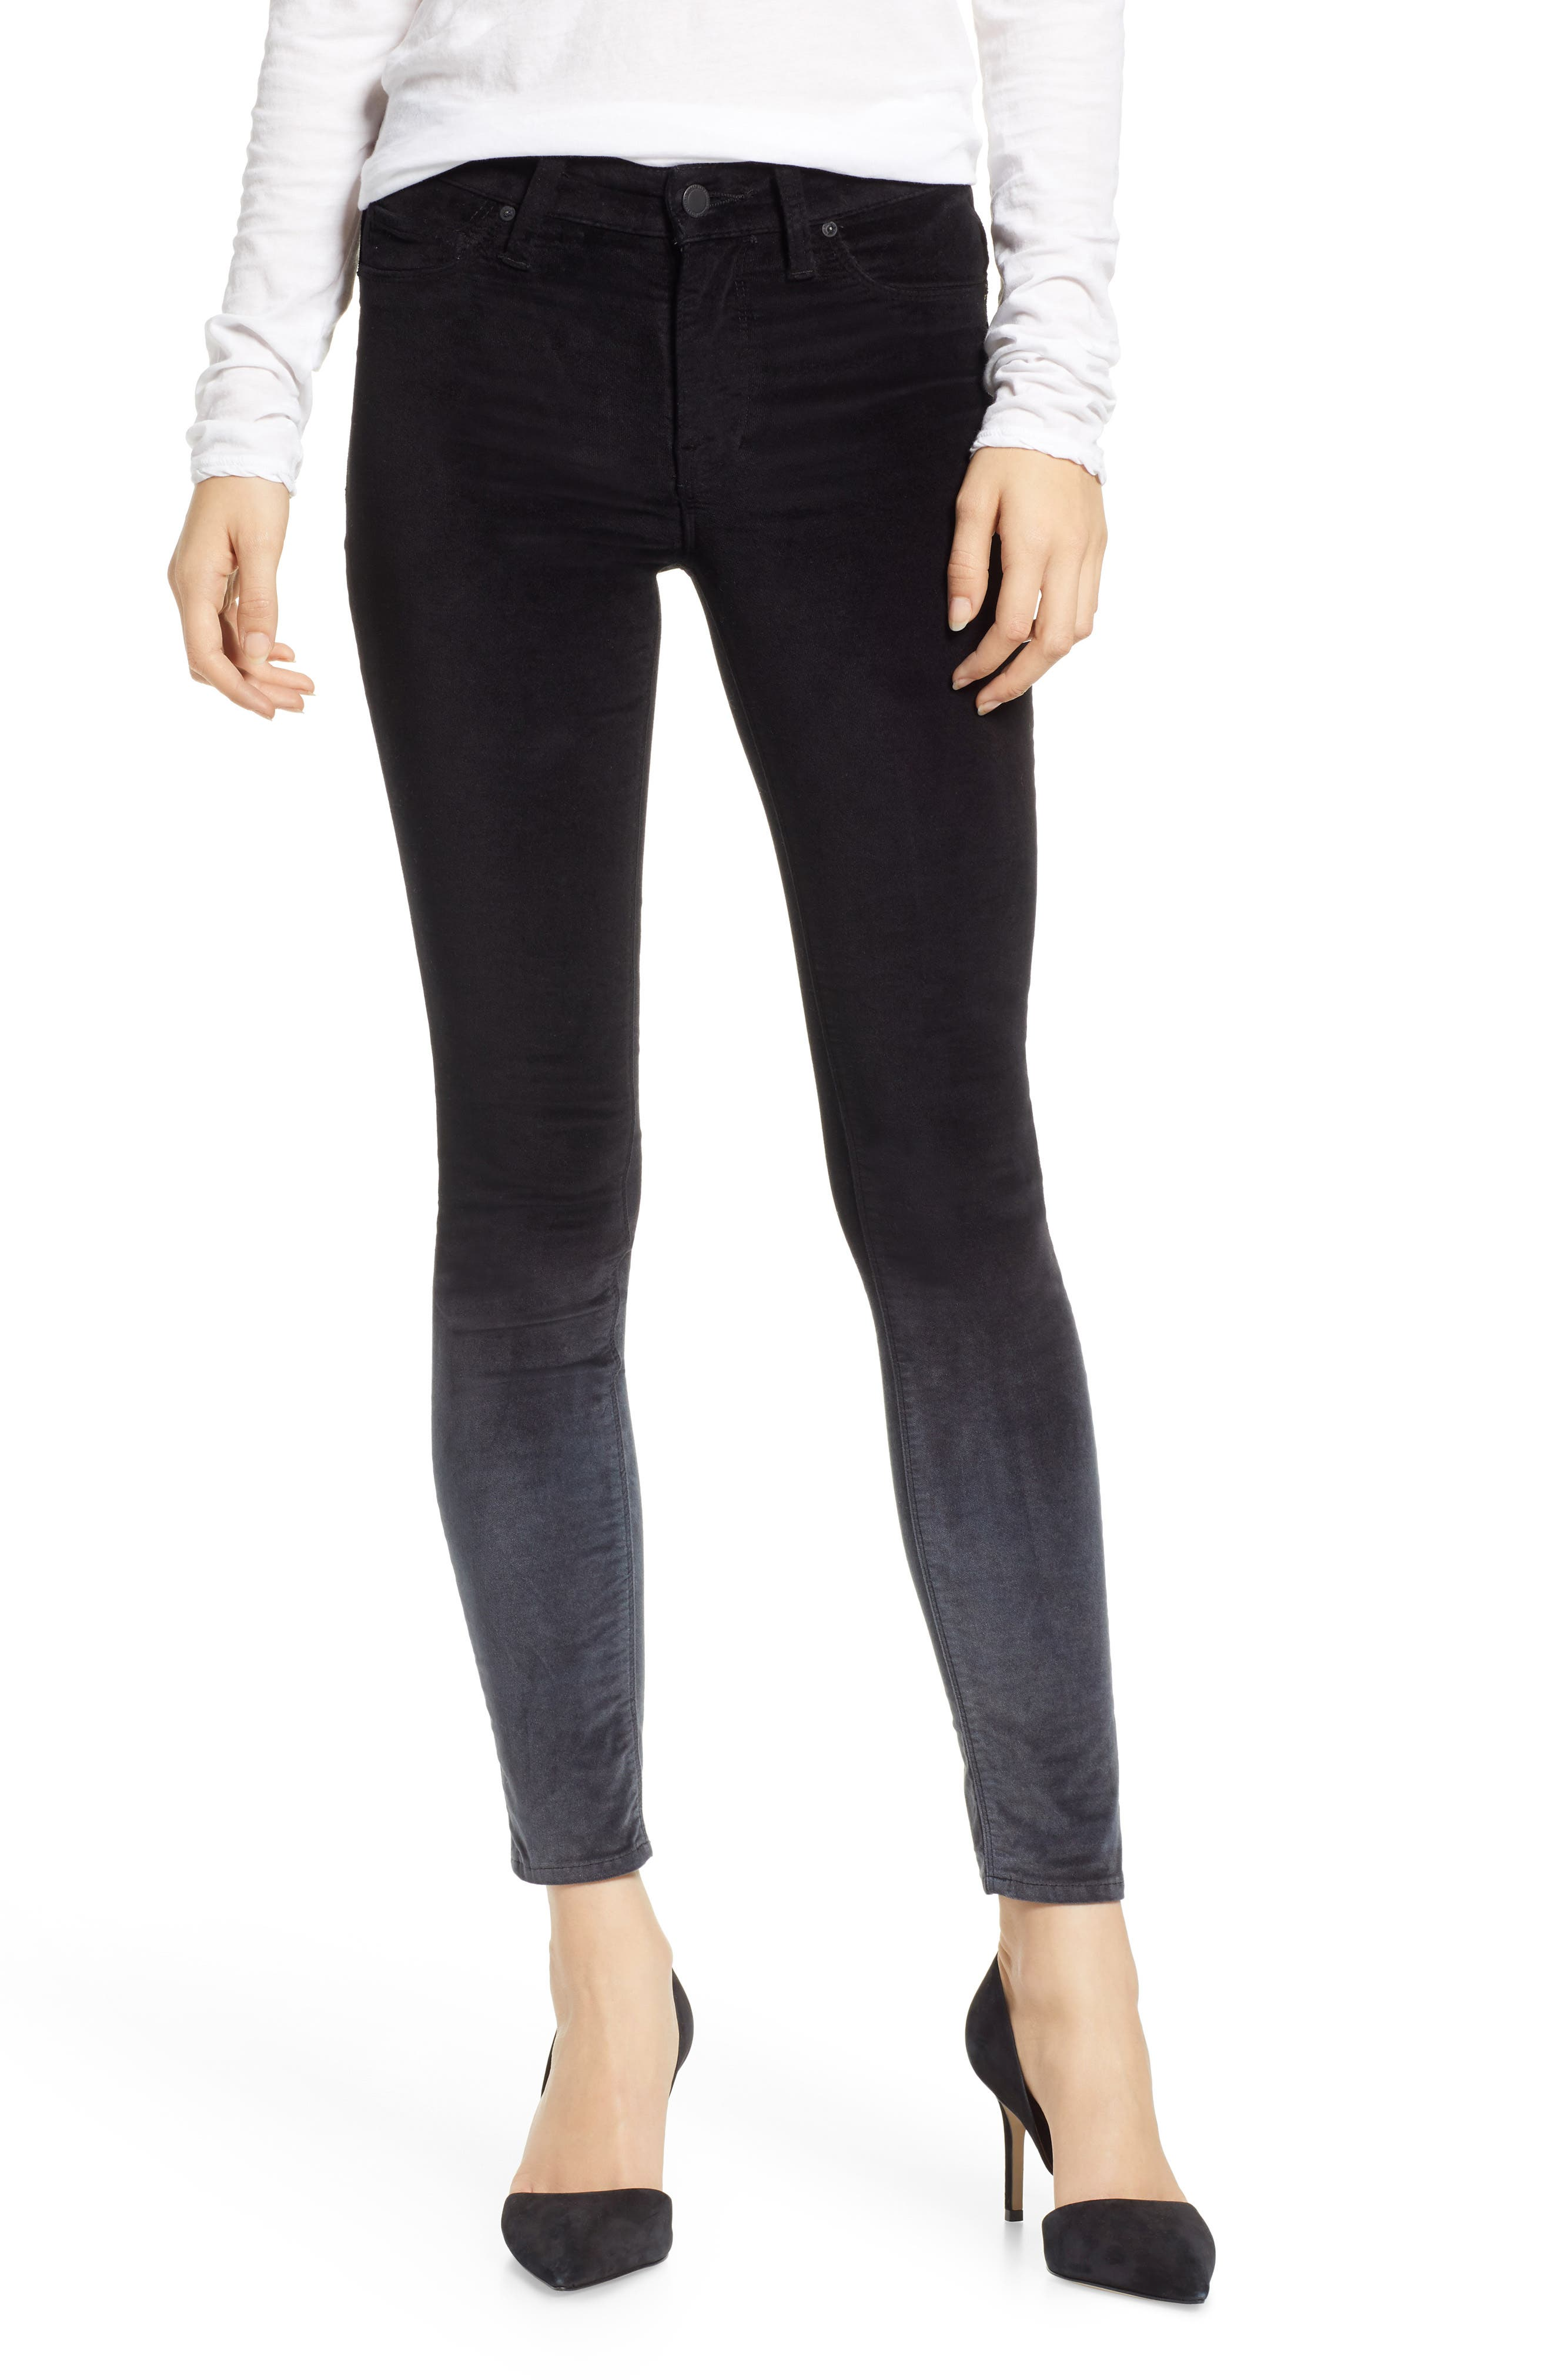 Nico Ankle Super Skinny Jeans,                             Main thumbnail 1, color,                             DEGRADE BLACK SLATE